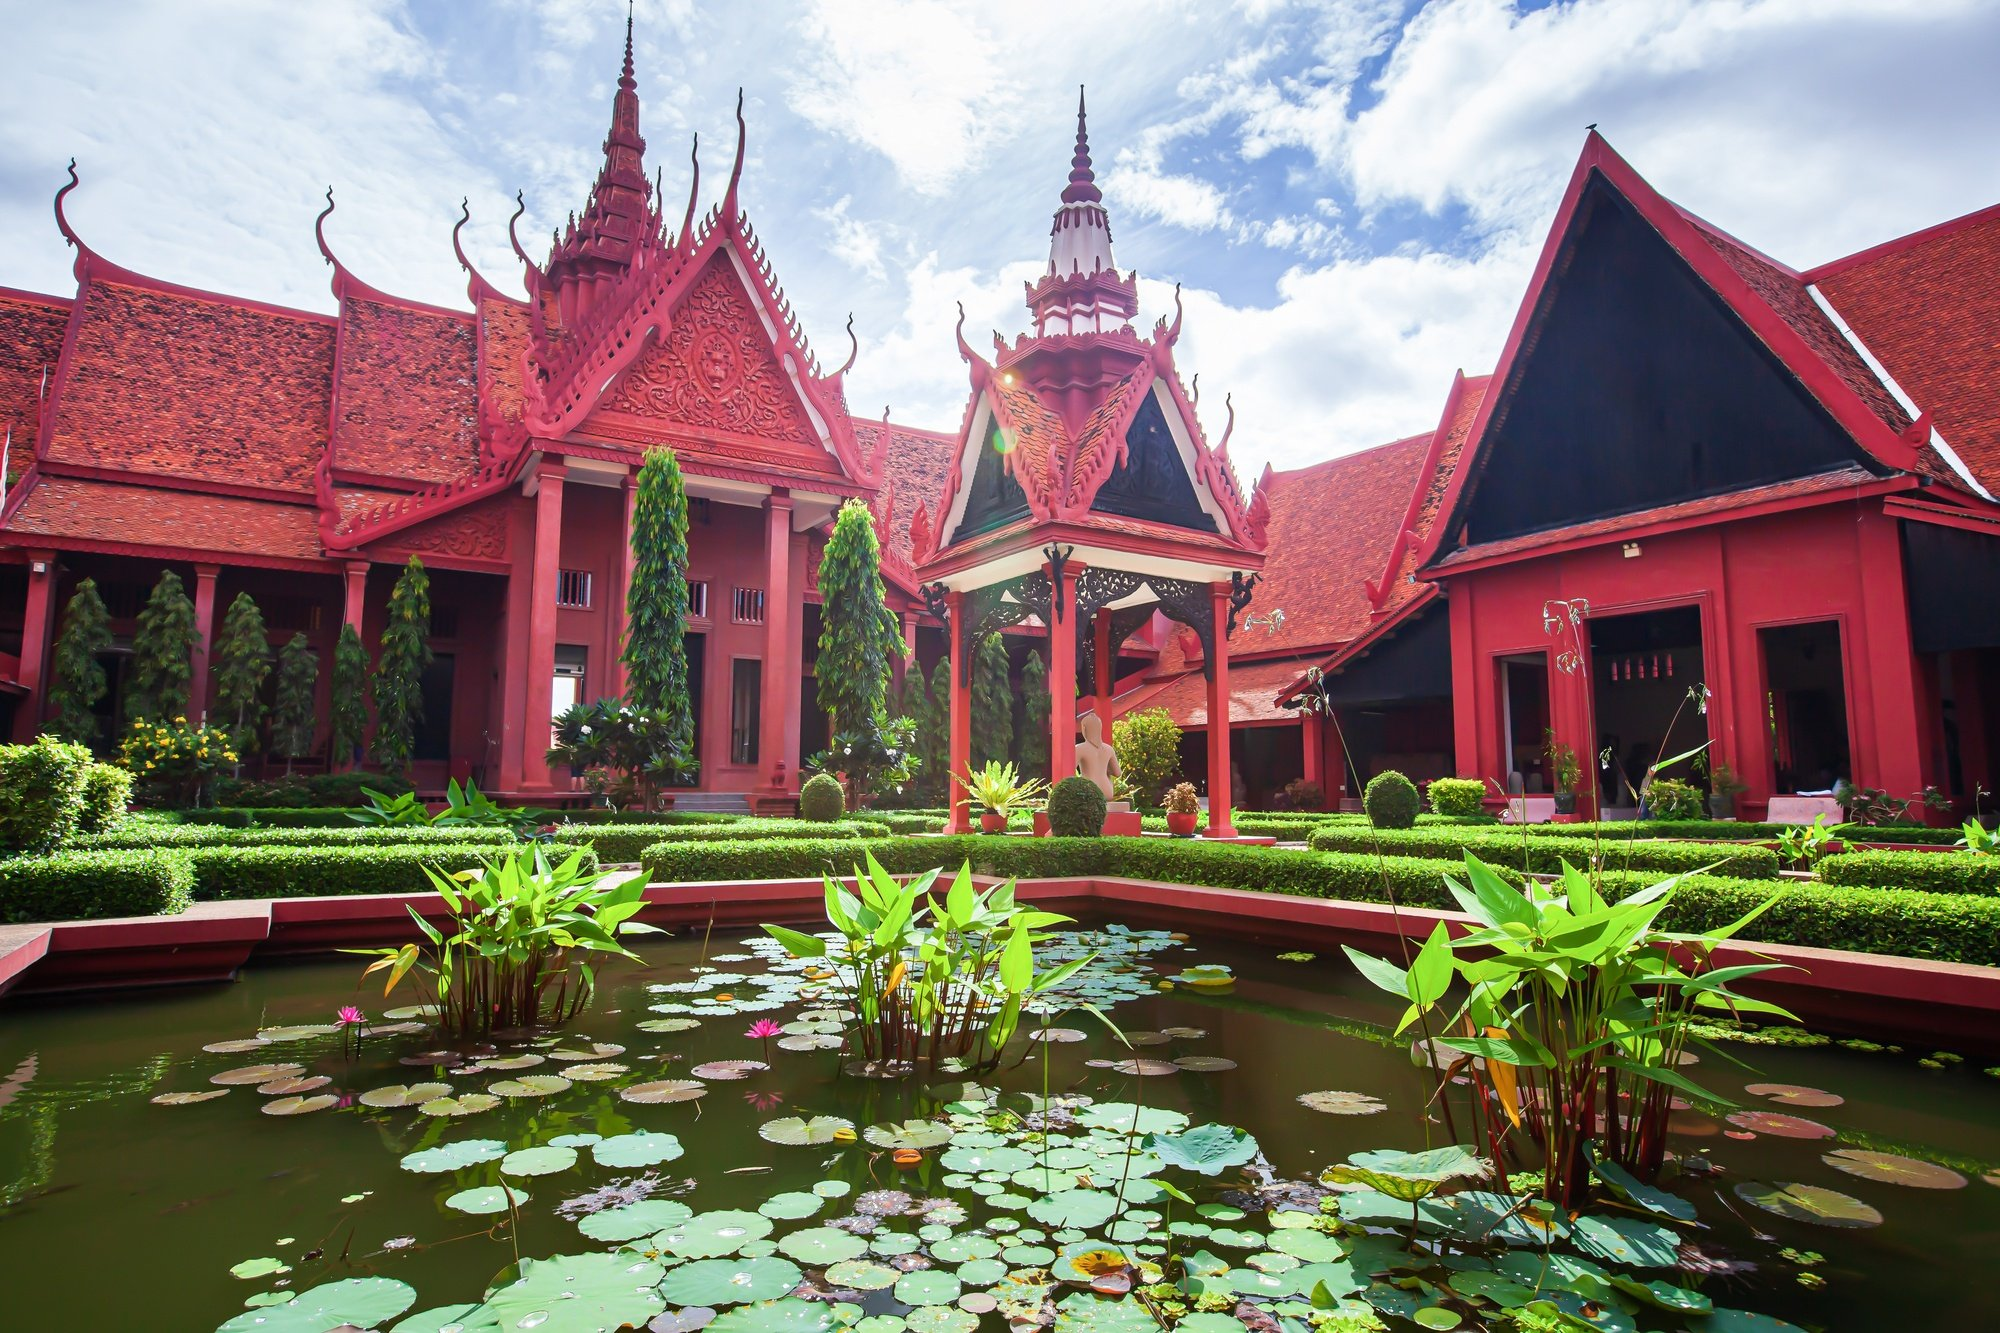 Koi ponds at National Museum of Cambodia